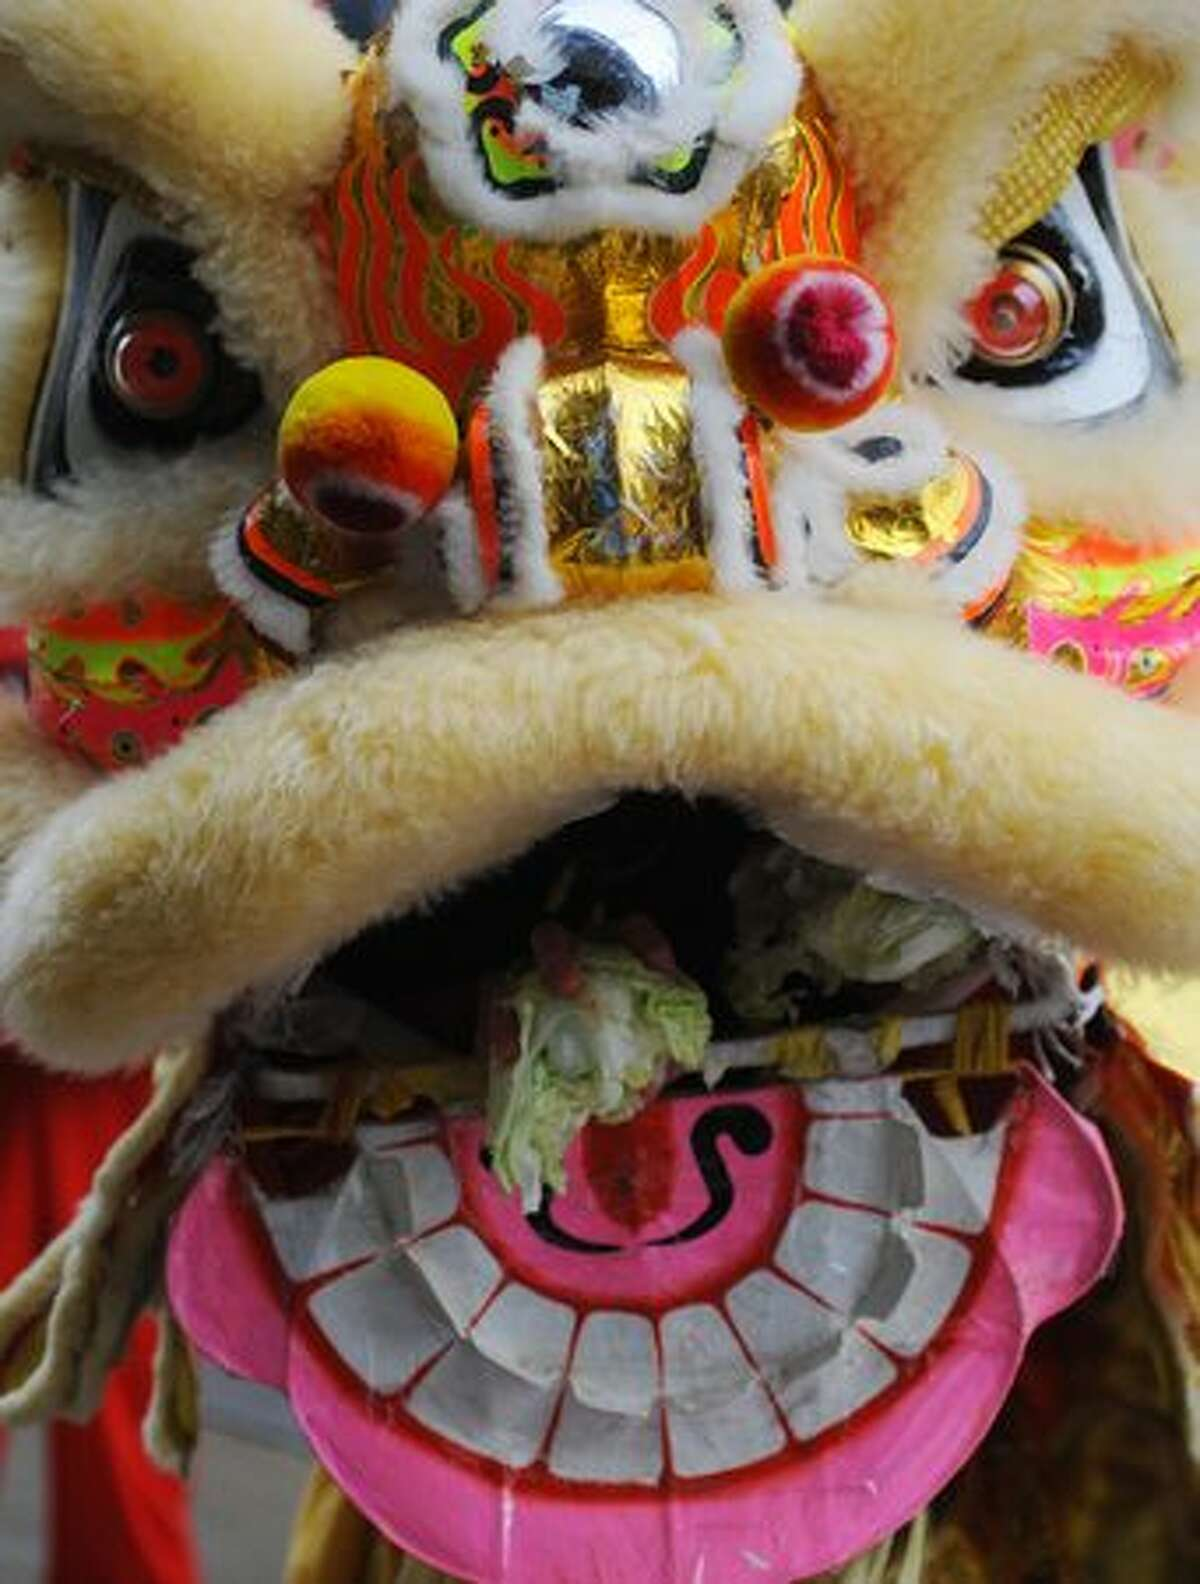 """The lion """"chews"""" cabbage during the Lunar New Year celebration in Seattle's International District Feb. 13, 2010."""